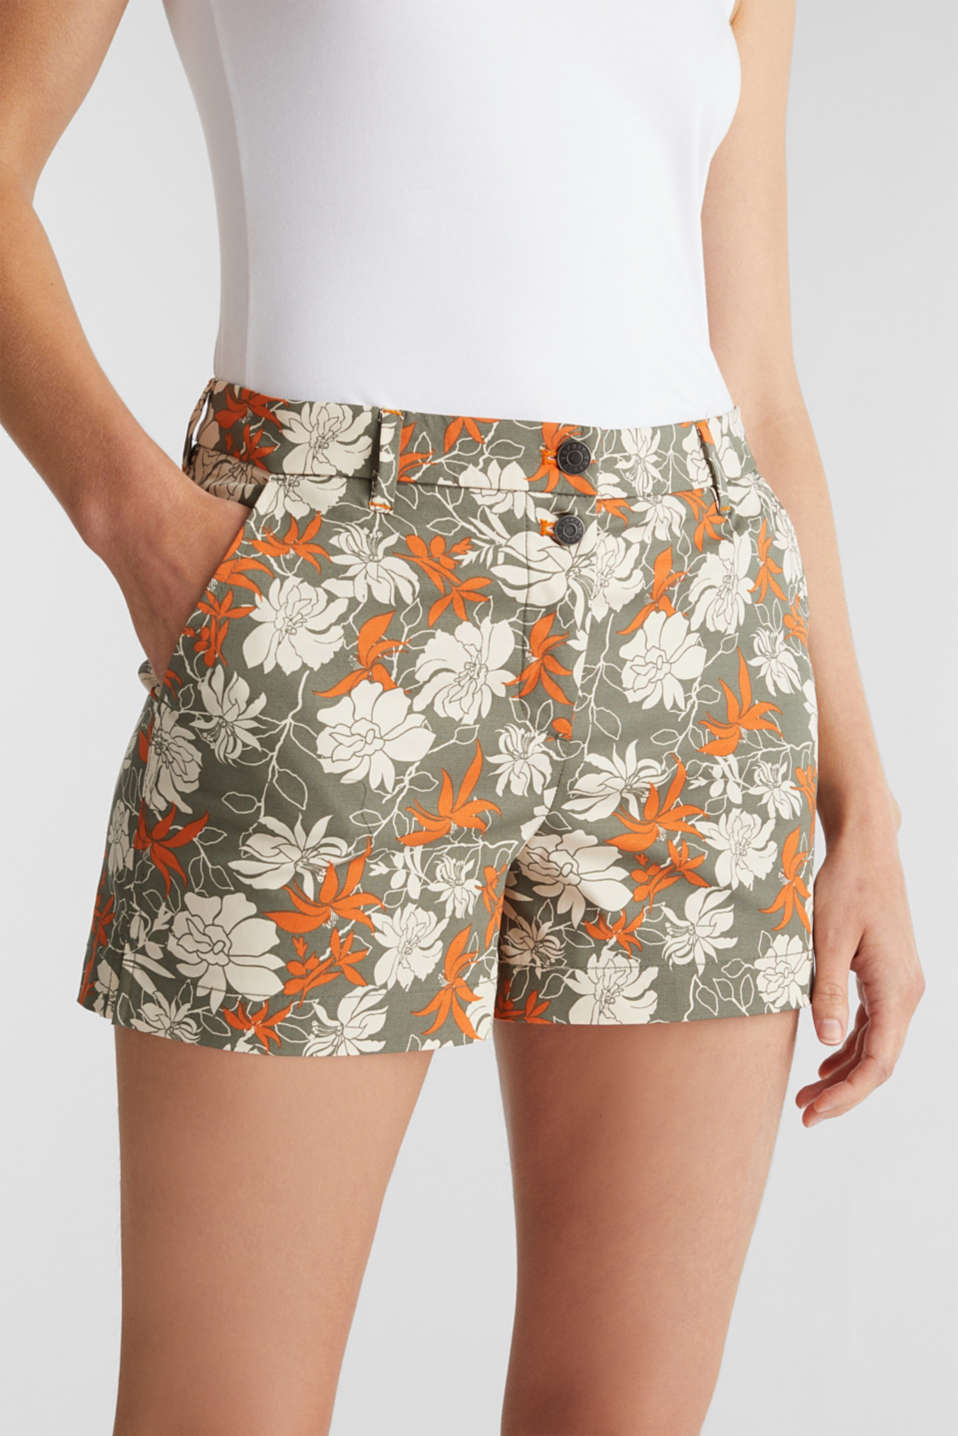 Shorts with a floral print, KHAKI GREEN 4, detail image number 2